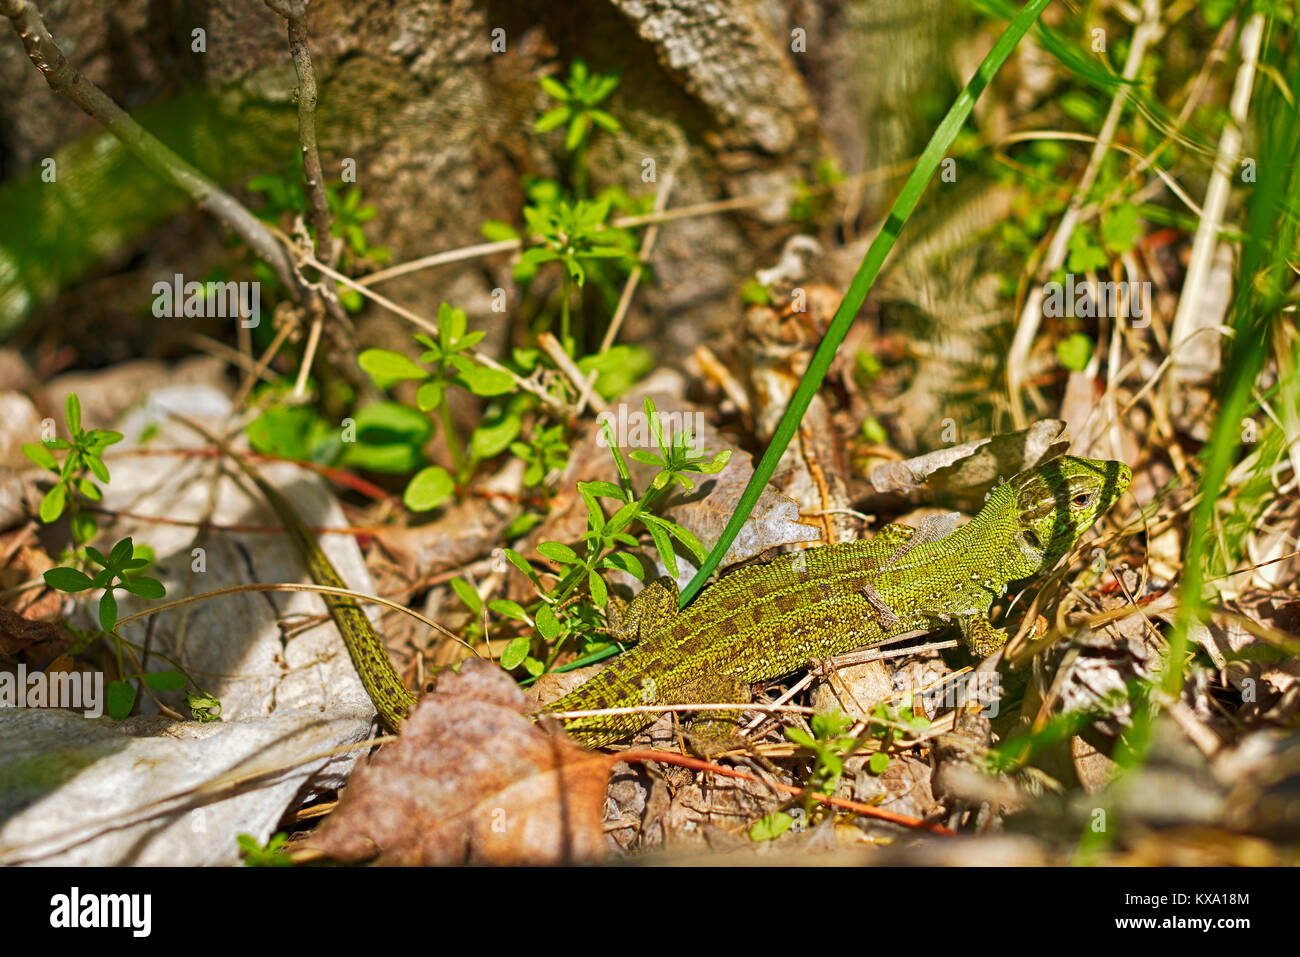 Lizard sitting in the thick green grass - Stock Image